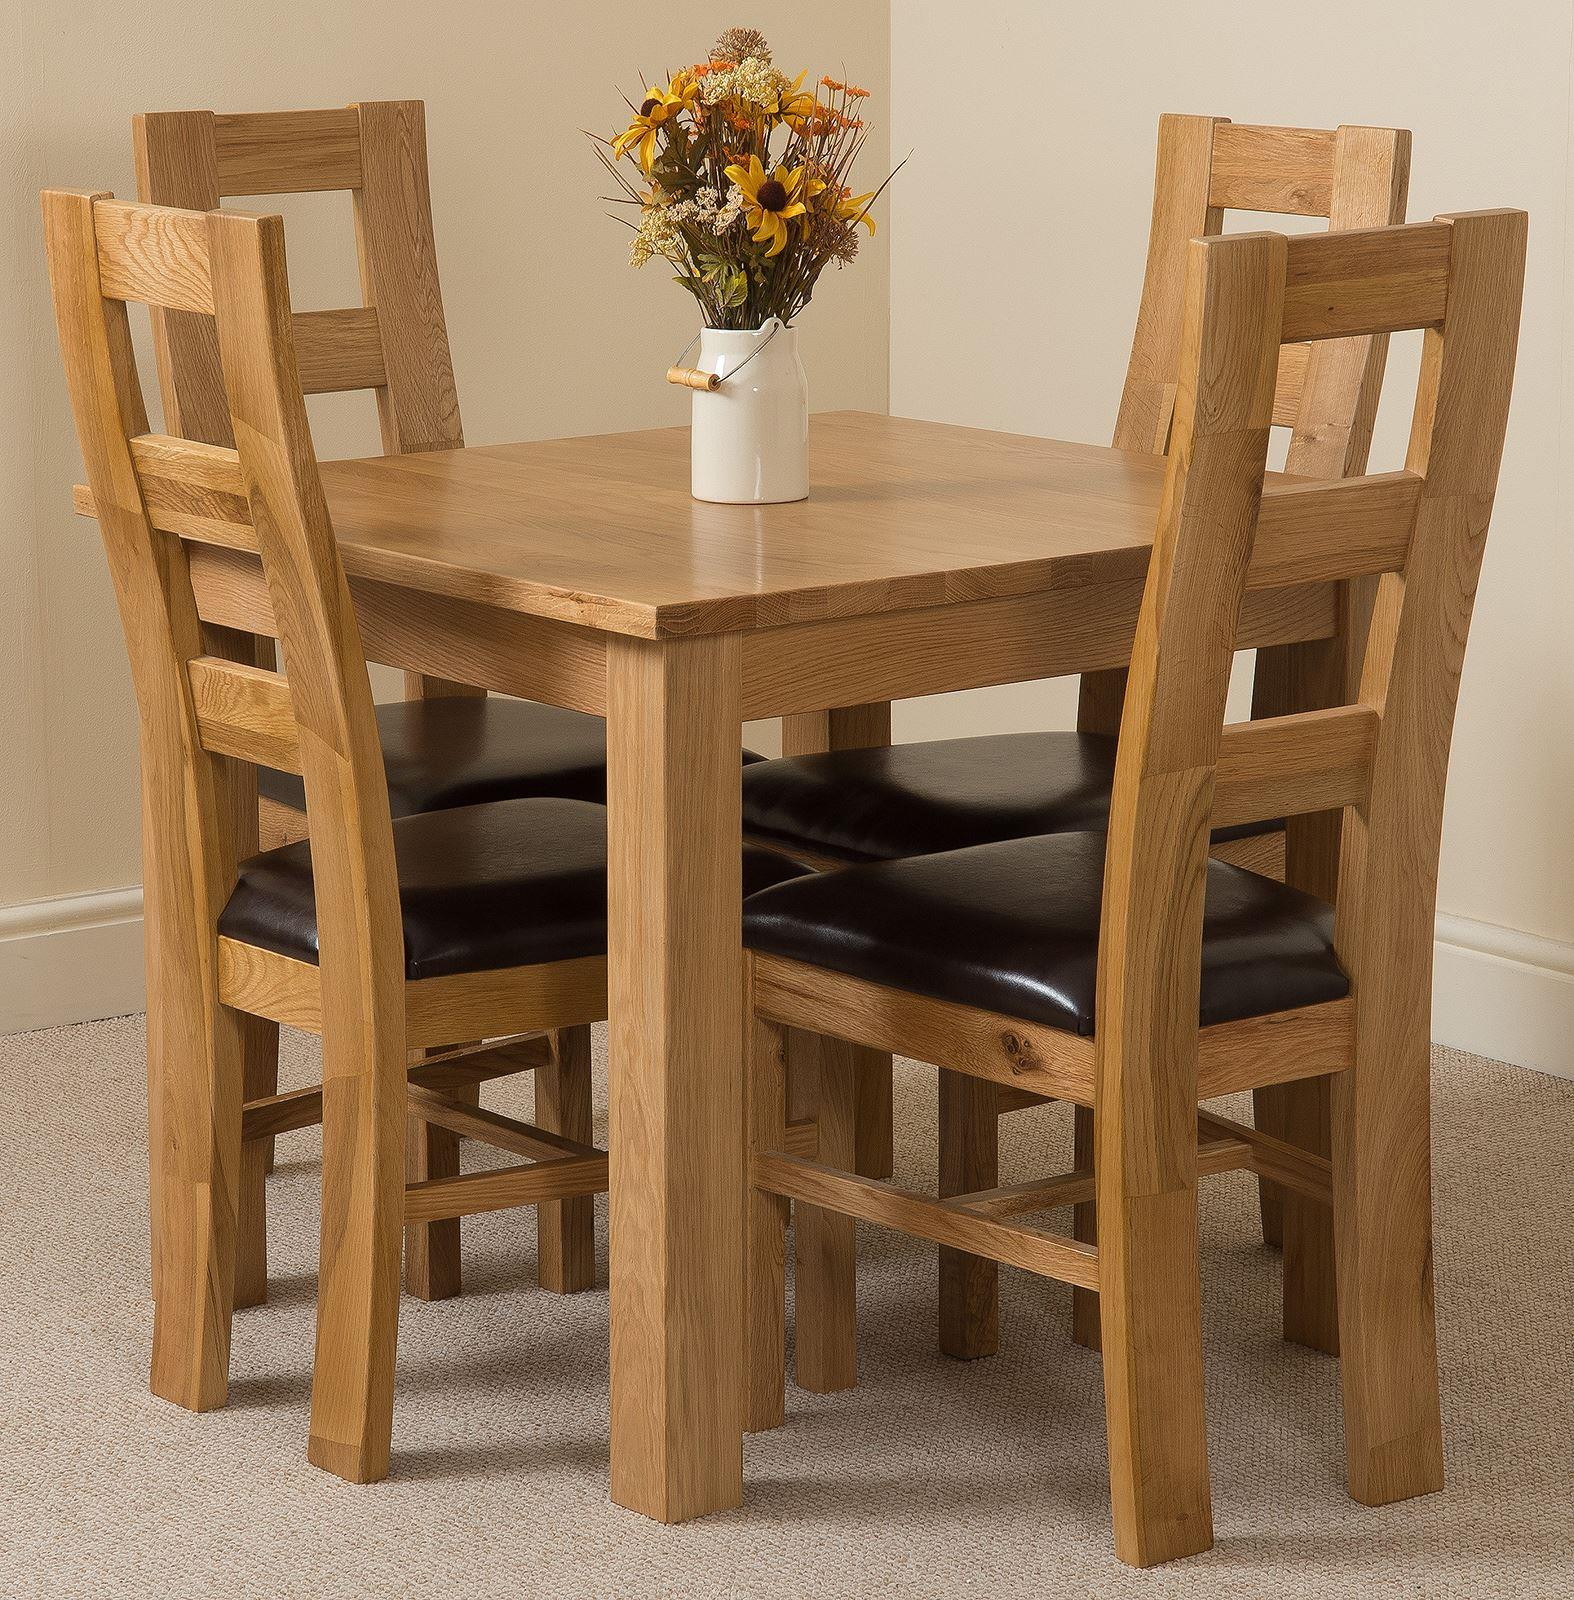 Oslo Solid Oak Dining Table and 4 Yale Solid Oak Leather Chairs